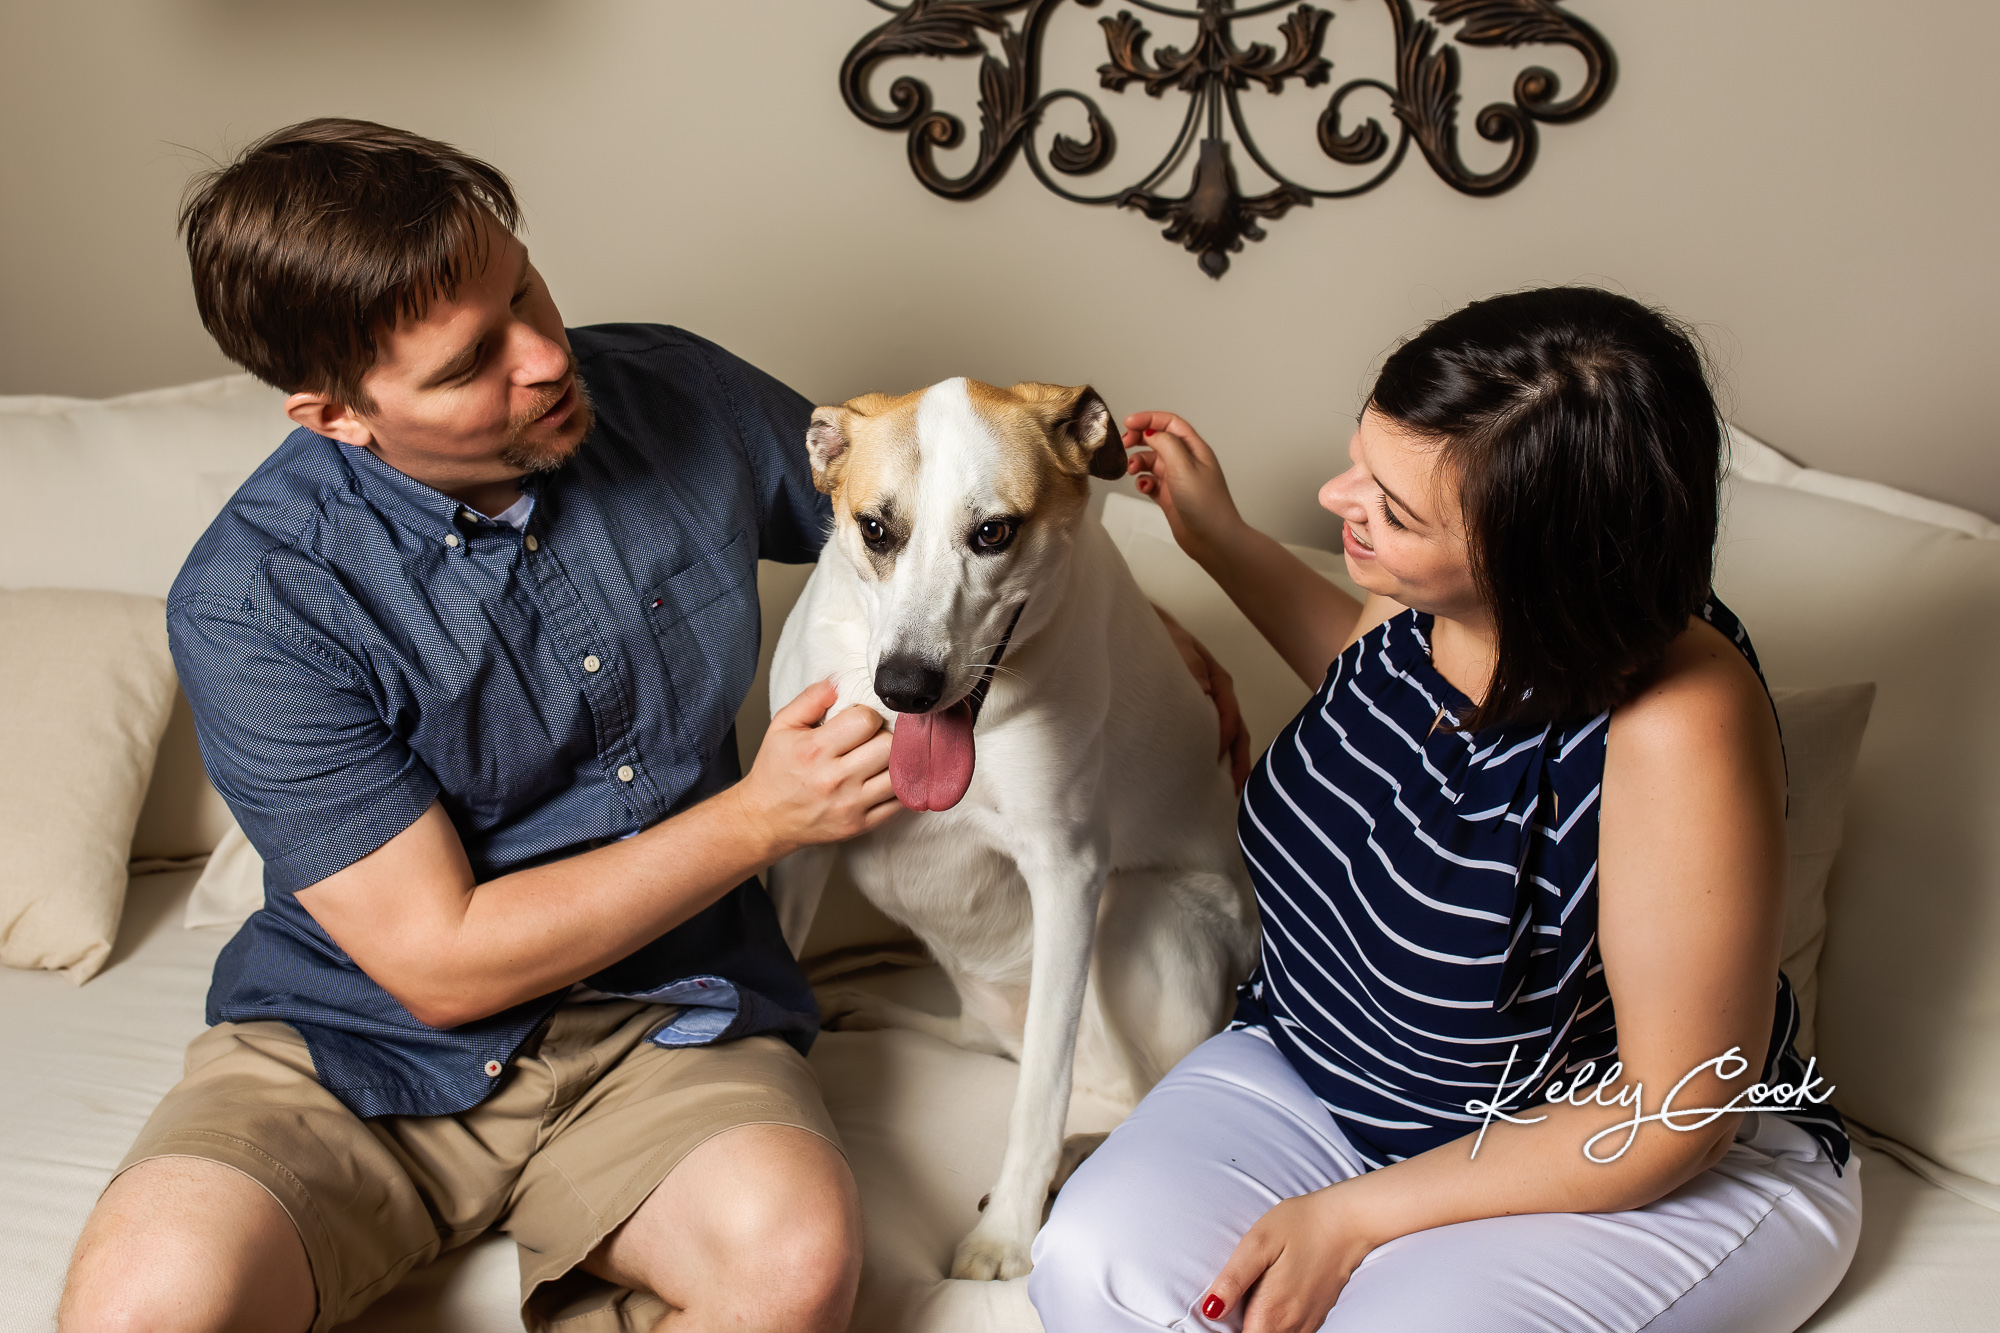 Candid lifestyle engagement photo of an engaged couple with their dog